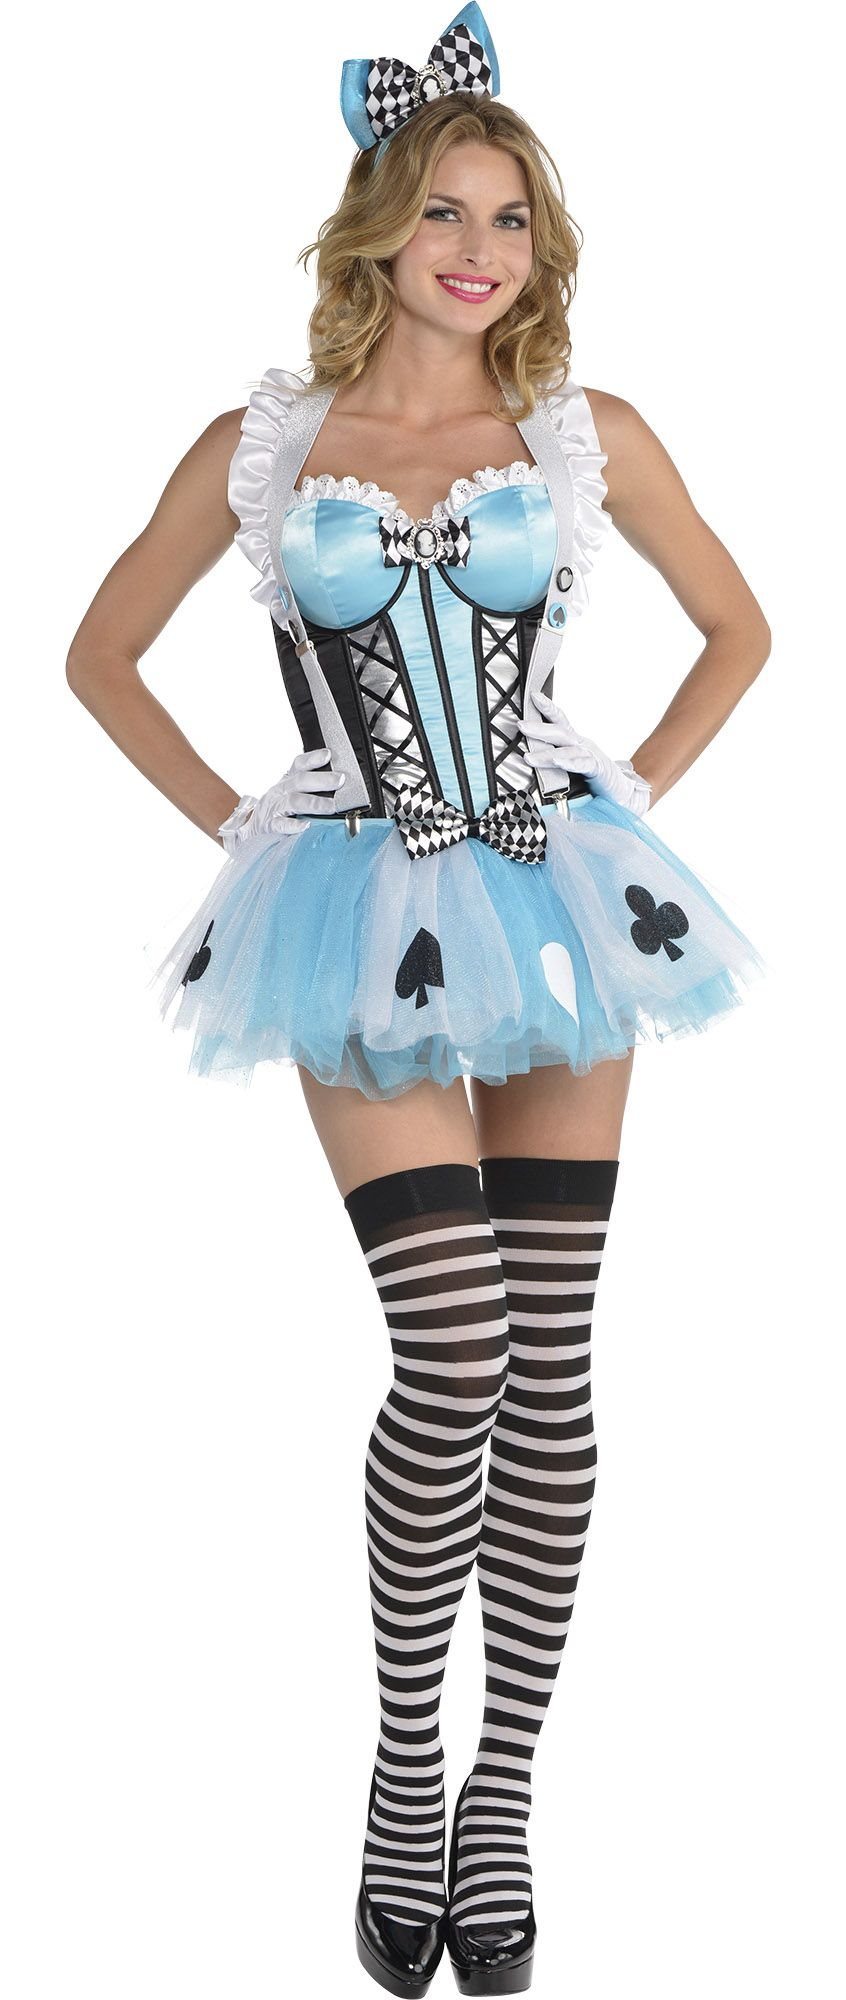 Create Your Own Look - Female Alice in Wonderland #2